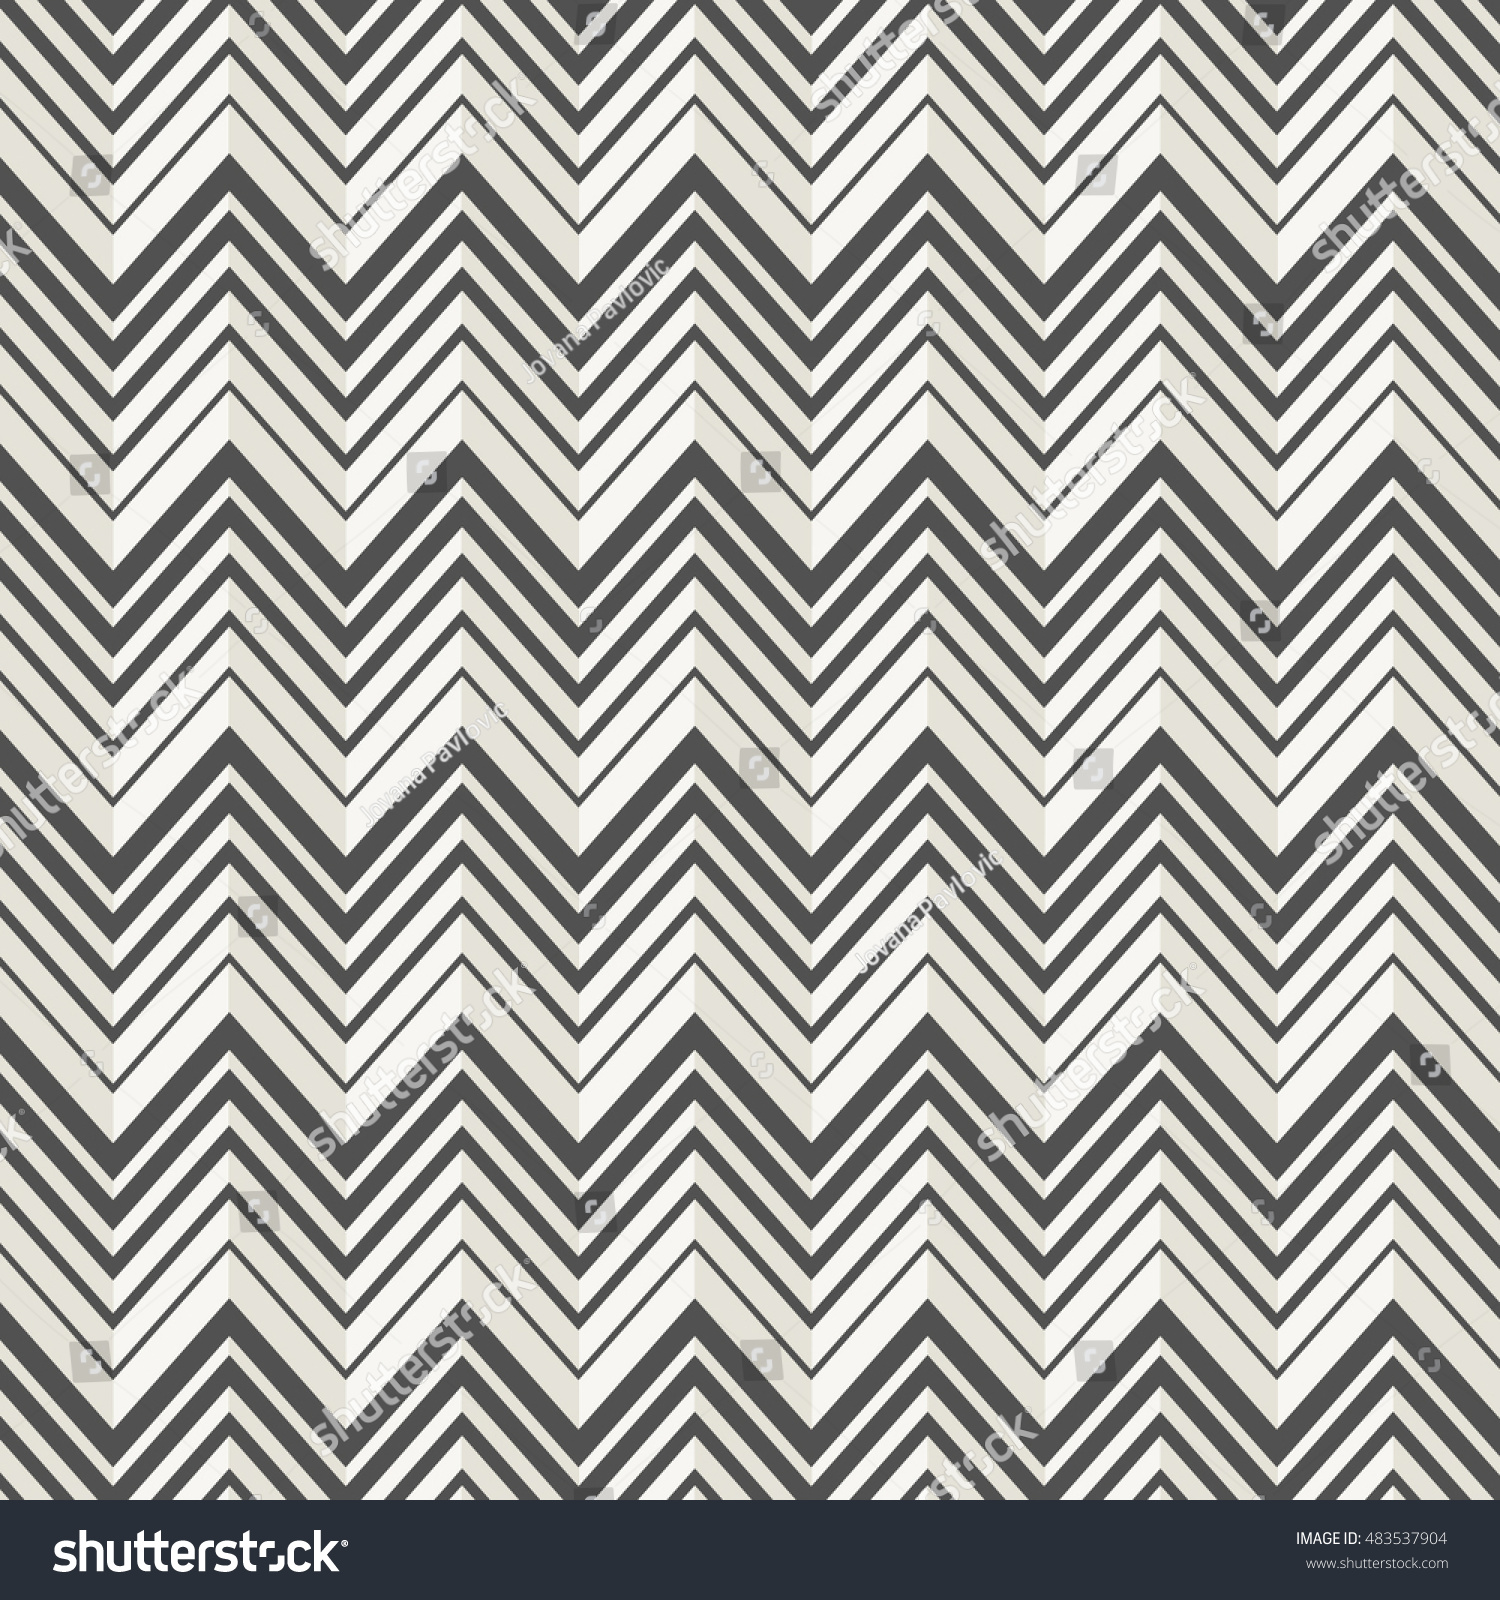 Wallpapers pattern fills web page backgrounds surface textures - Vector Patterns Texture Can Be Used For Wallpaper Pattern Fills Web Page Background